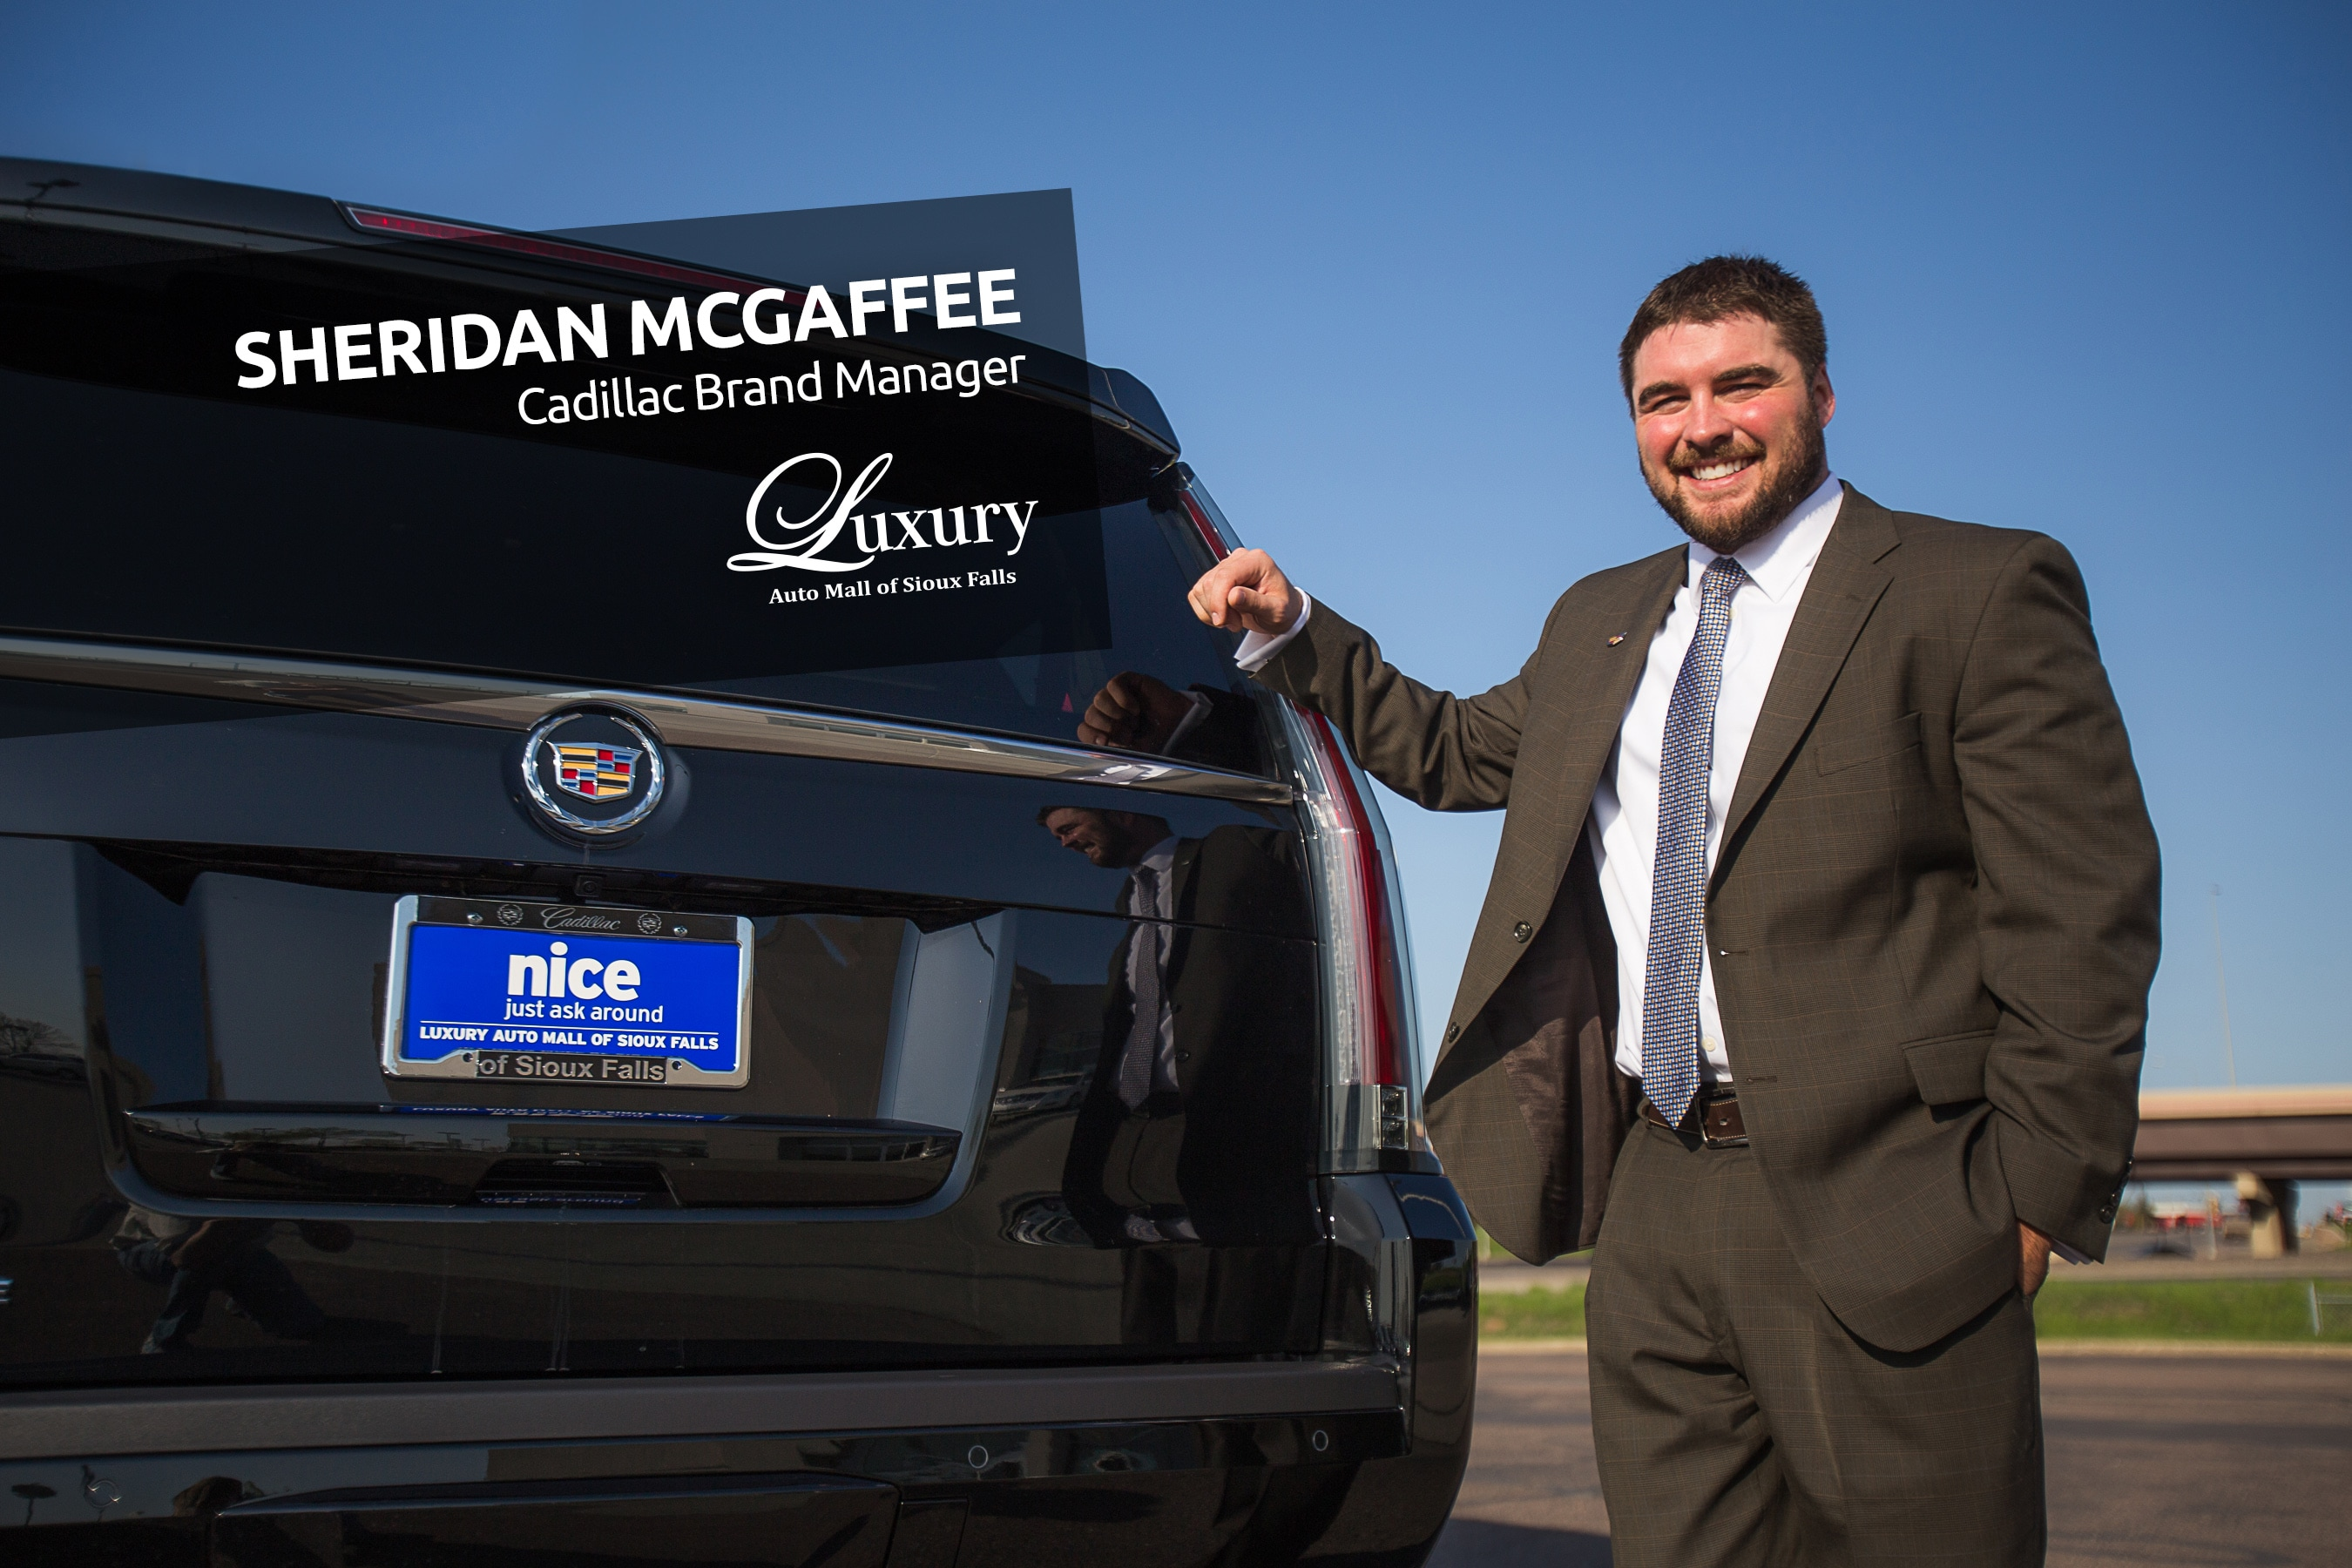 Meet Us Monday Sheridan McGaffee Cadillac Brand Manager at Luxury